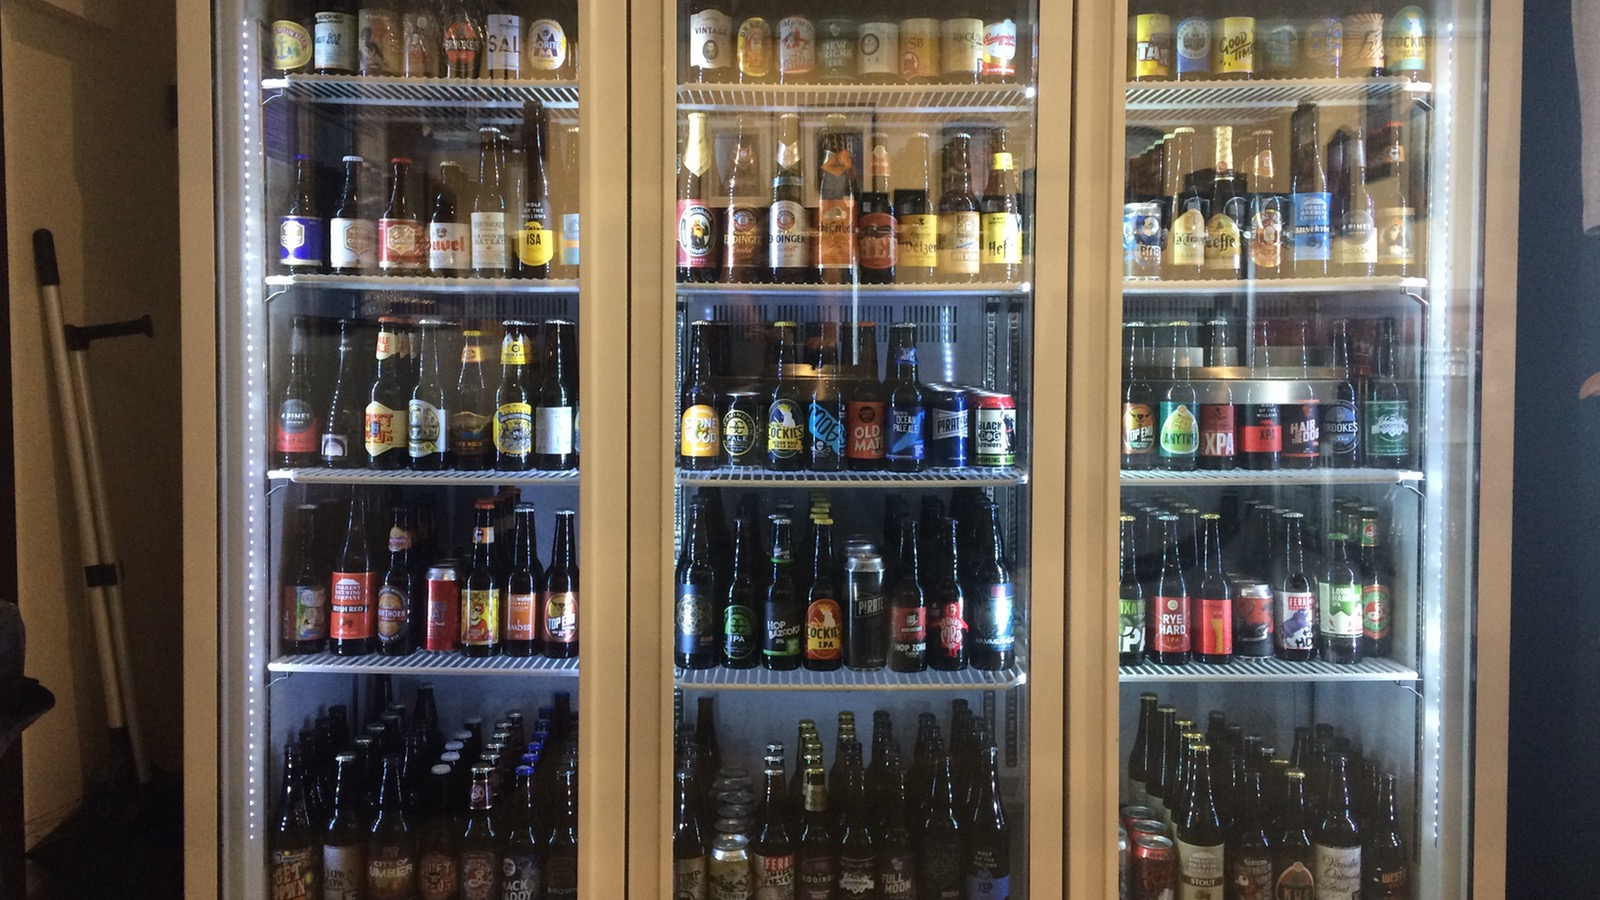 Over 100 different craft beers